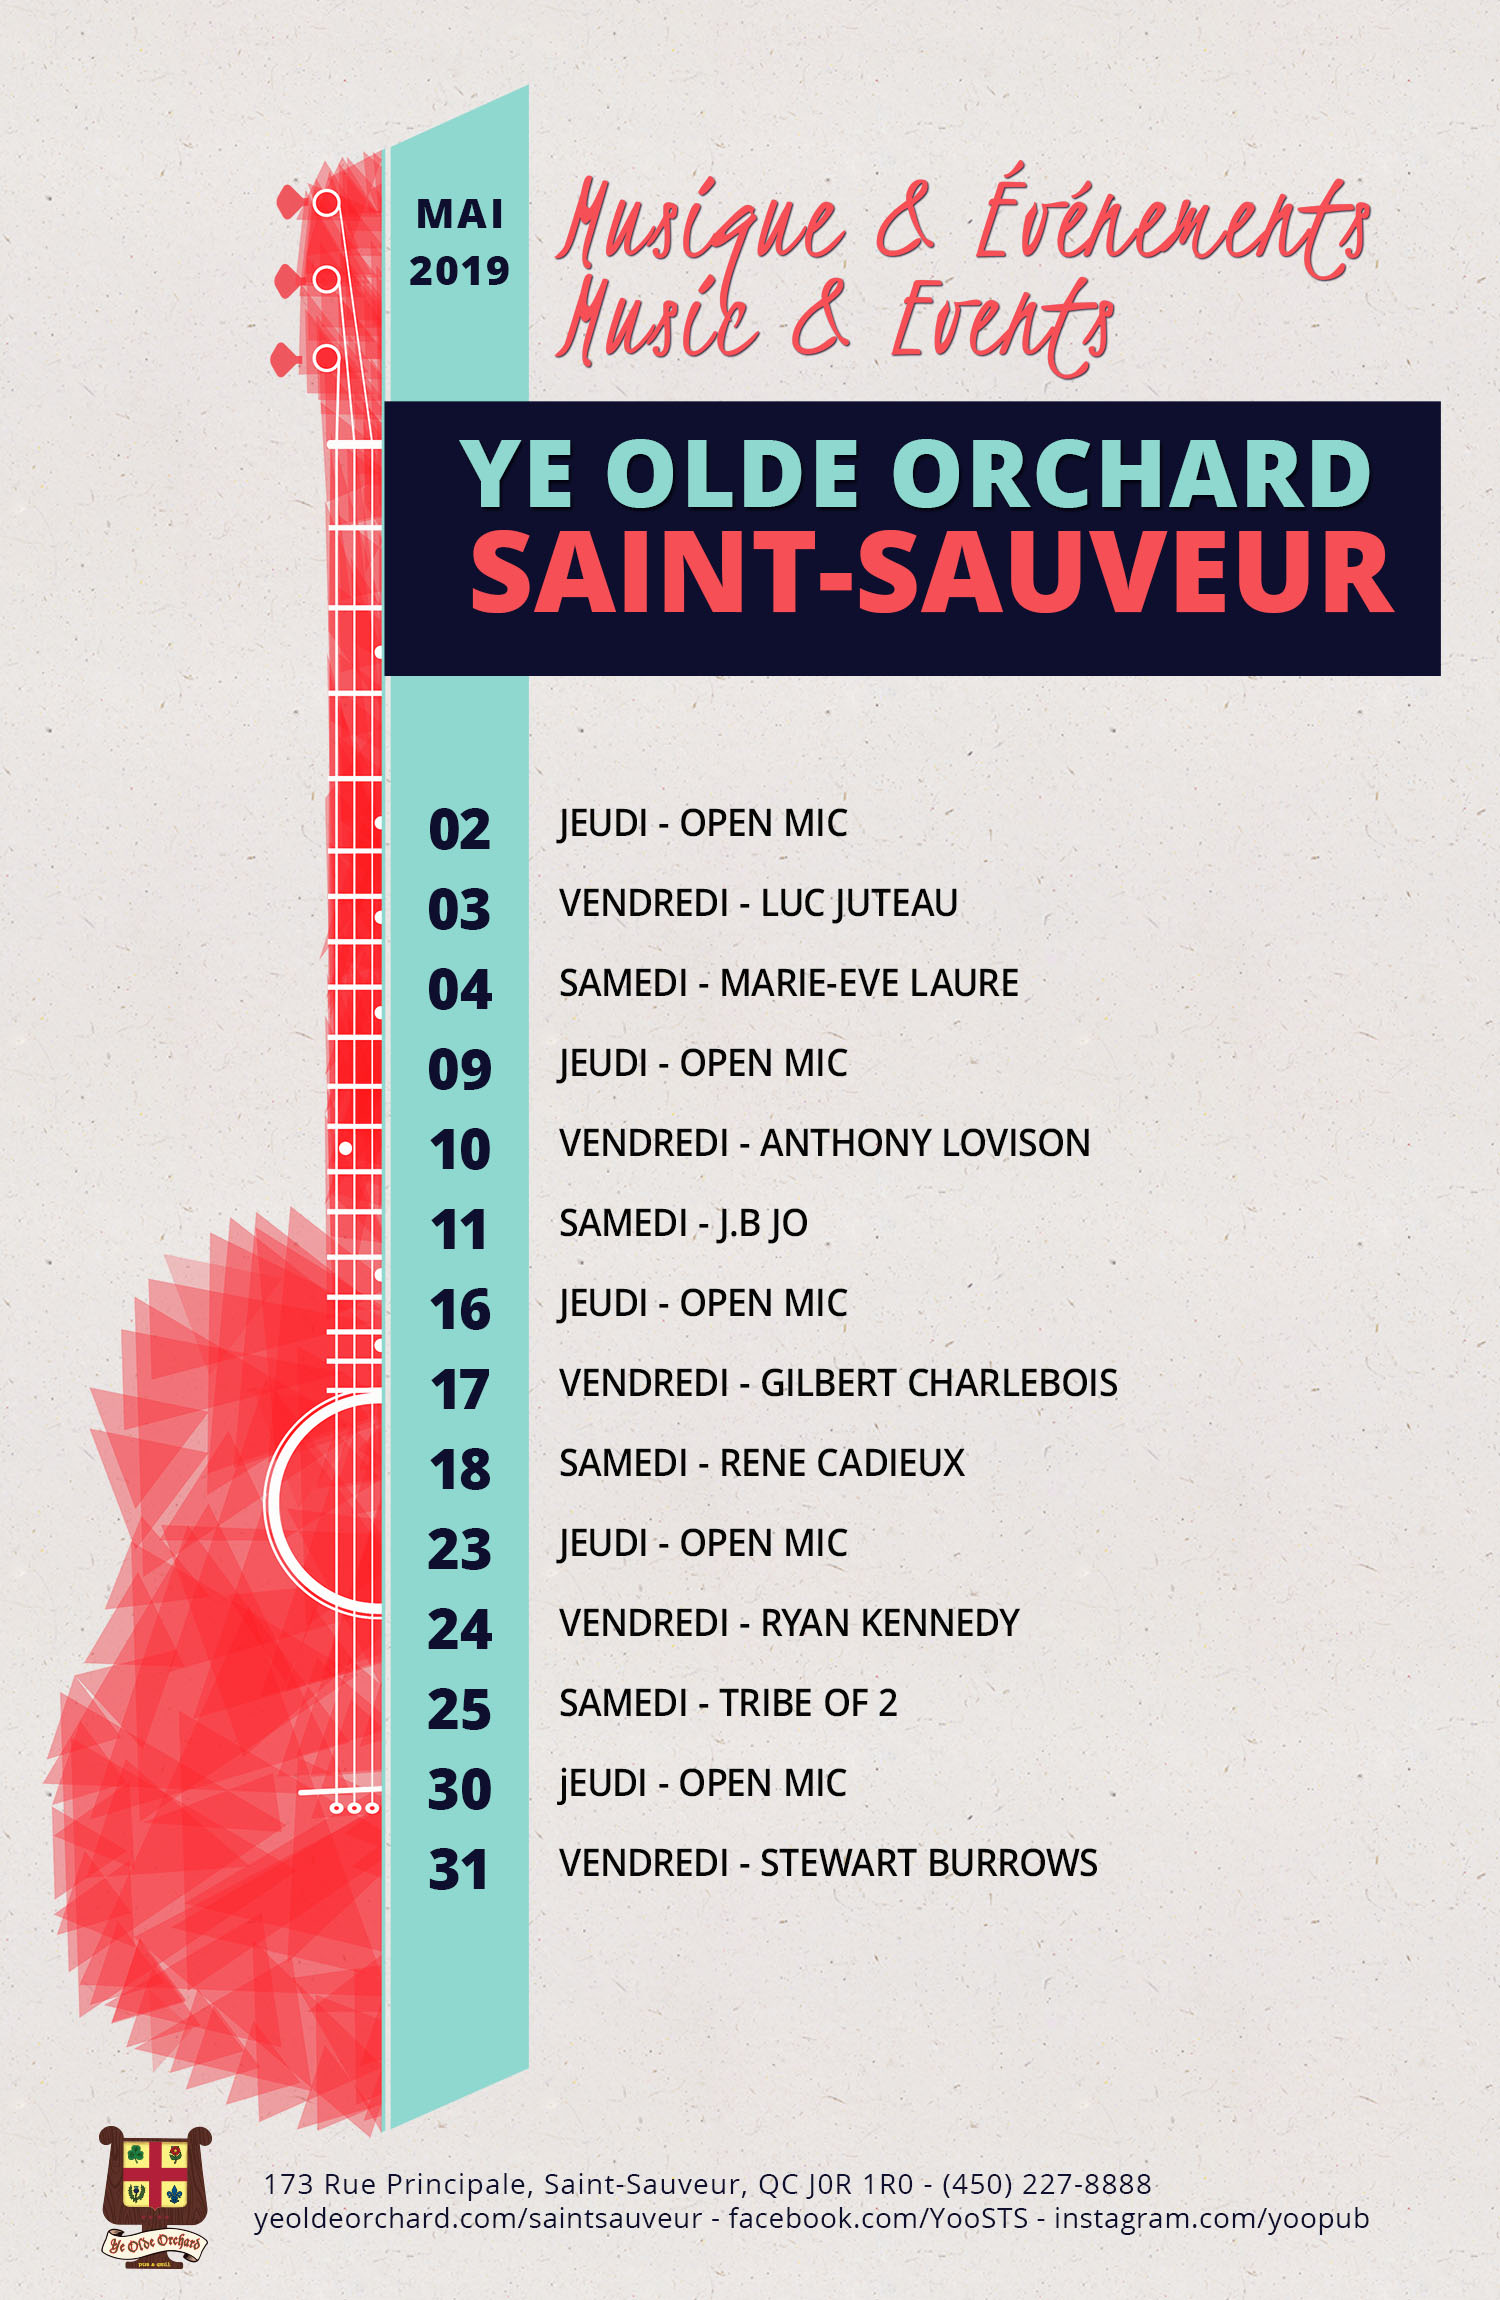 ye-olde-orchard-pub-music-and-events-calendar-SaintSauveur-WEB-MAY